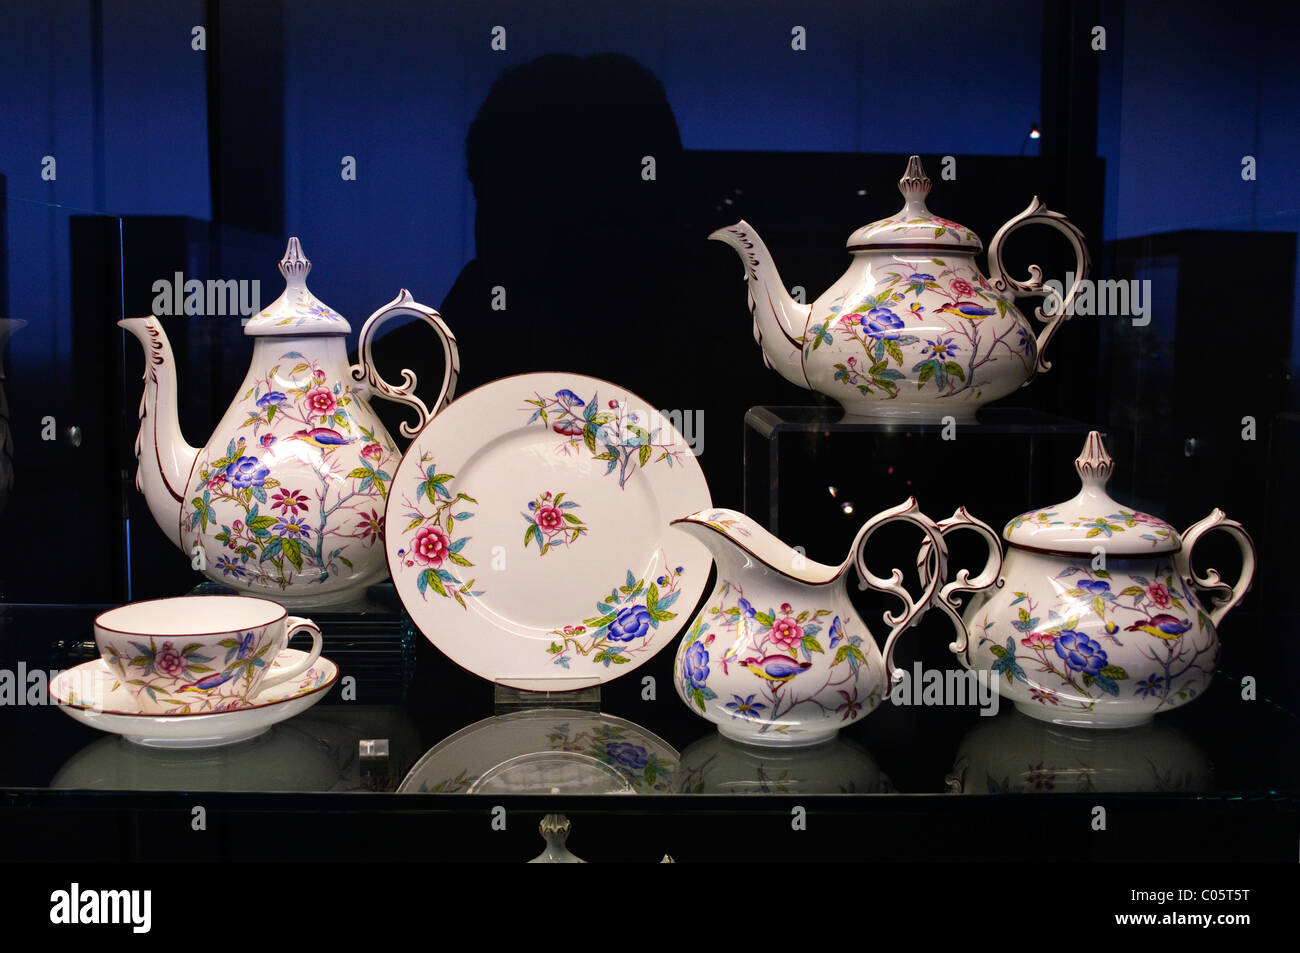 villeroy boch bone china tea service dating from the 1850 1865 stock photo 34549476 alamy. Black Bedroom Furniture Sets. Home Design Ideas